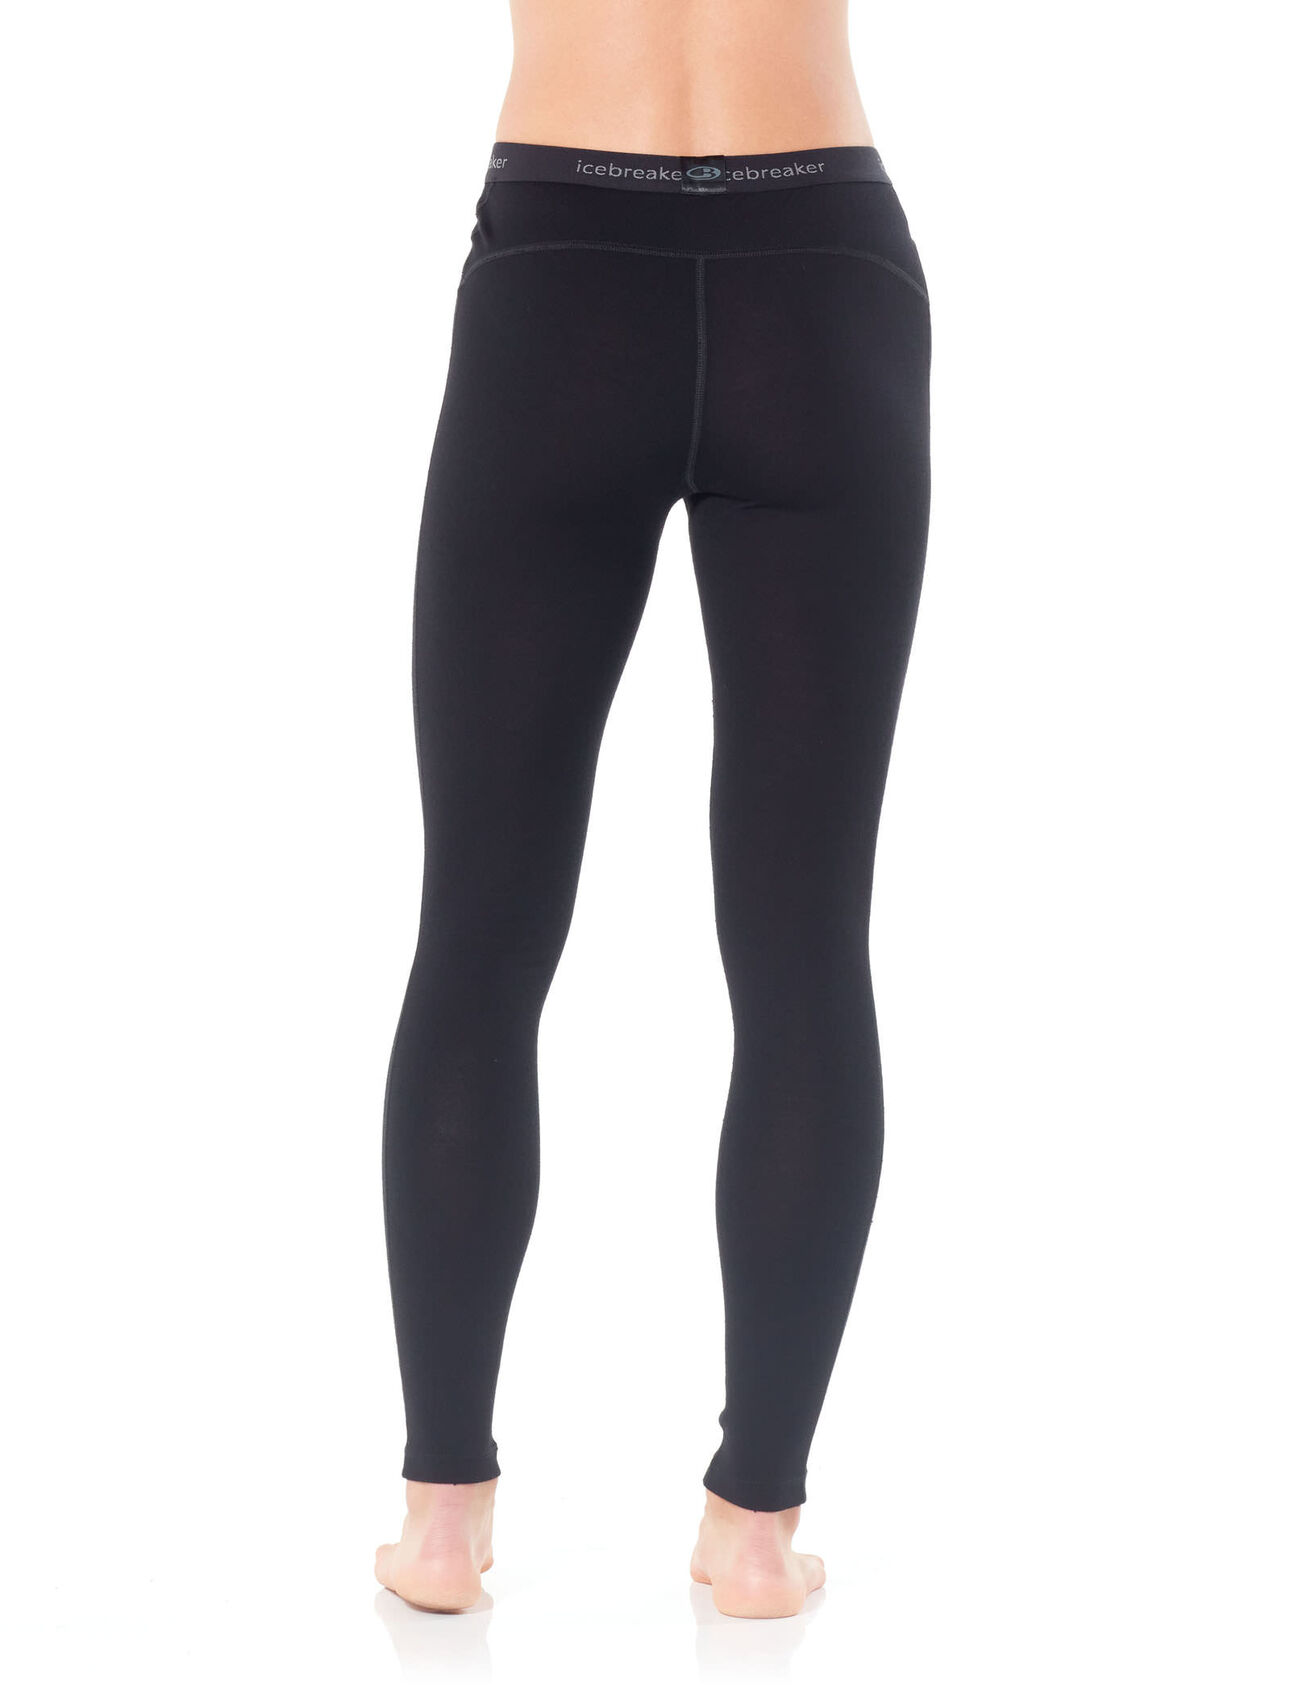 dcbb74dfa62 260 Tech Leggings - Icebreaker (CA)